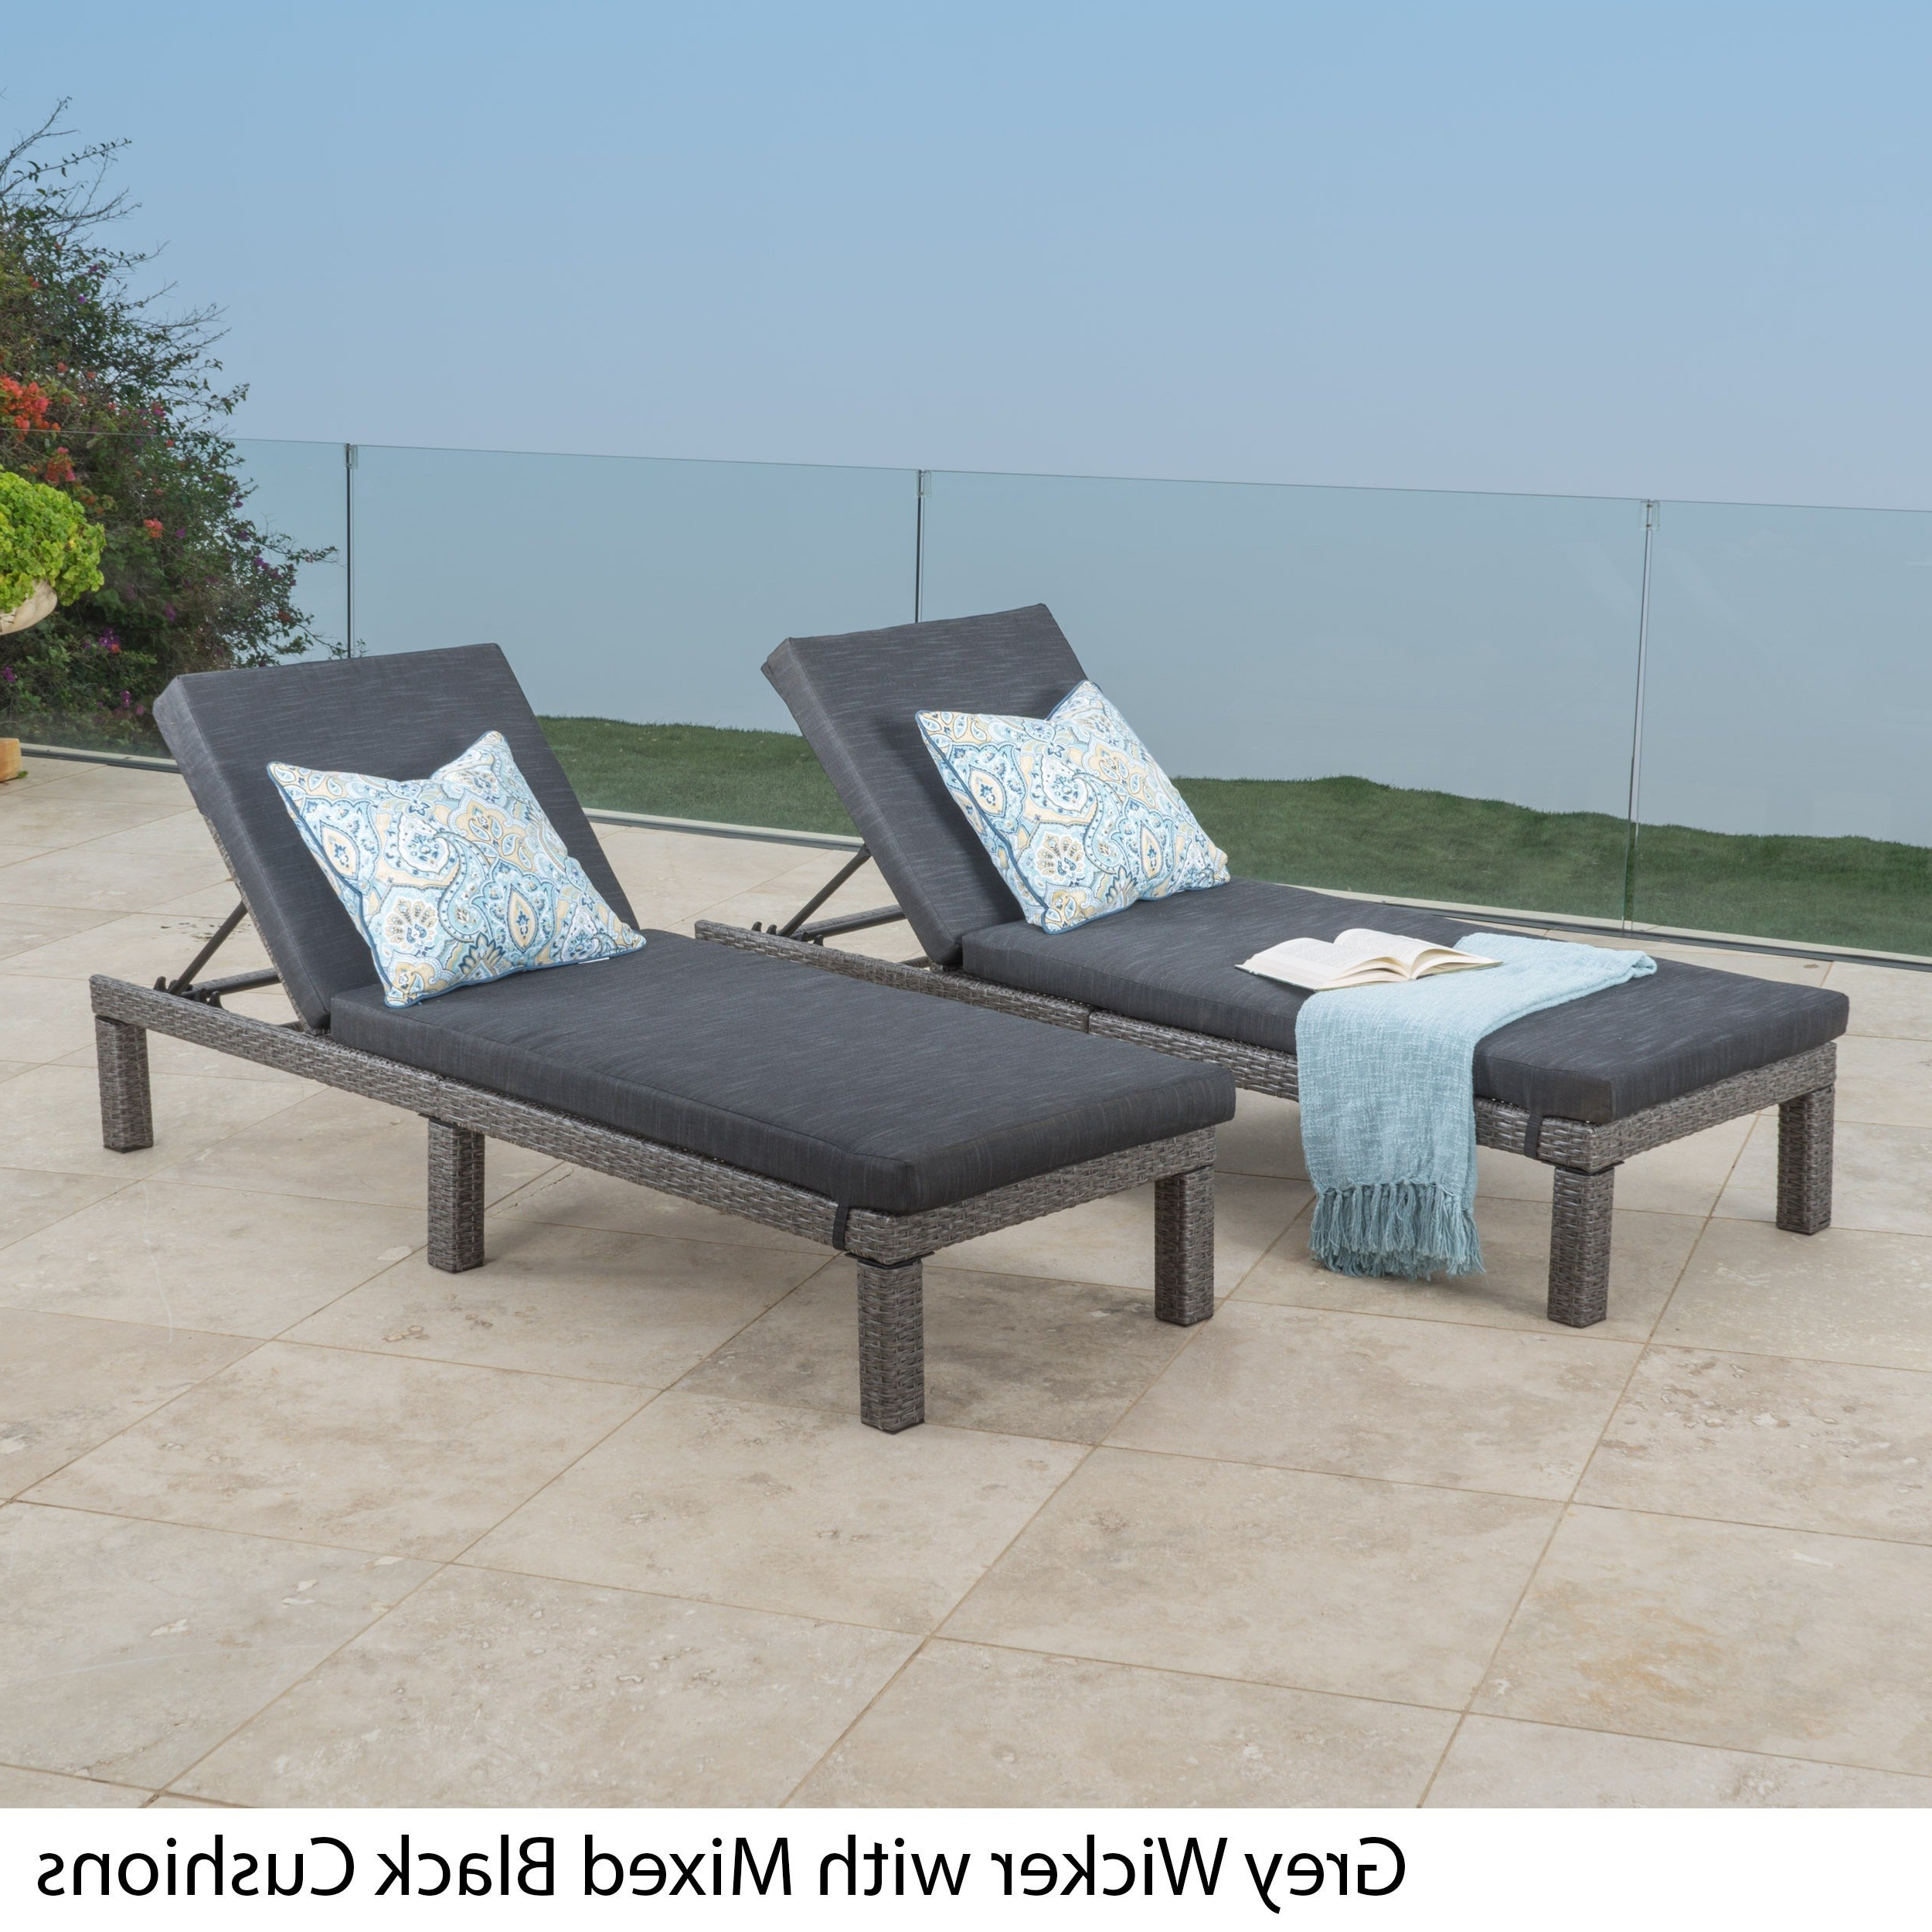 Puerta Outdoor Adjustable Pe Wicker Chaise Lounge With Cushion Christopher Knight Home (Set Of 2) Pertaining To Most Recently Released Outdoor Wicker Adjustable Chaise Lounges With Cushions (View 19 of 25)